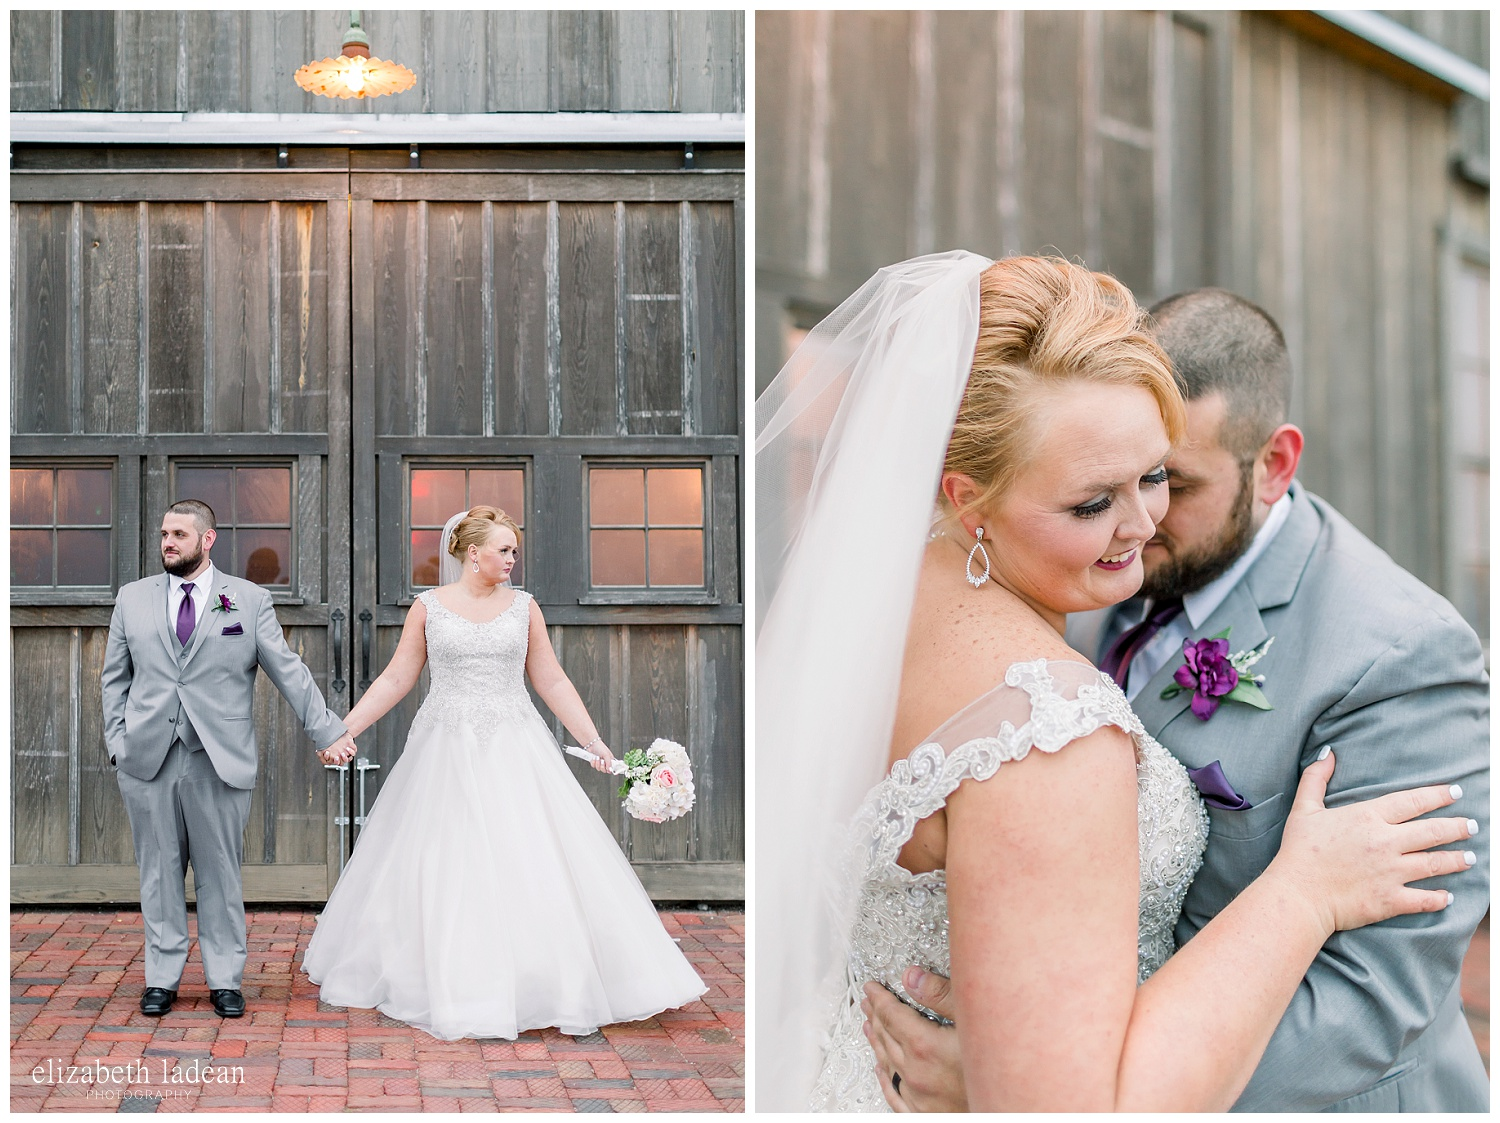 Weston-Timber-Barn-Wedding-Photography-L+A-elizabeth-ladean0photo_1902.jpg